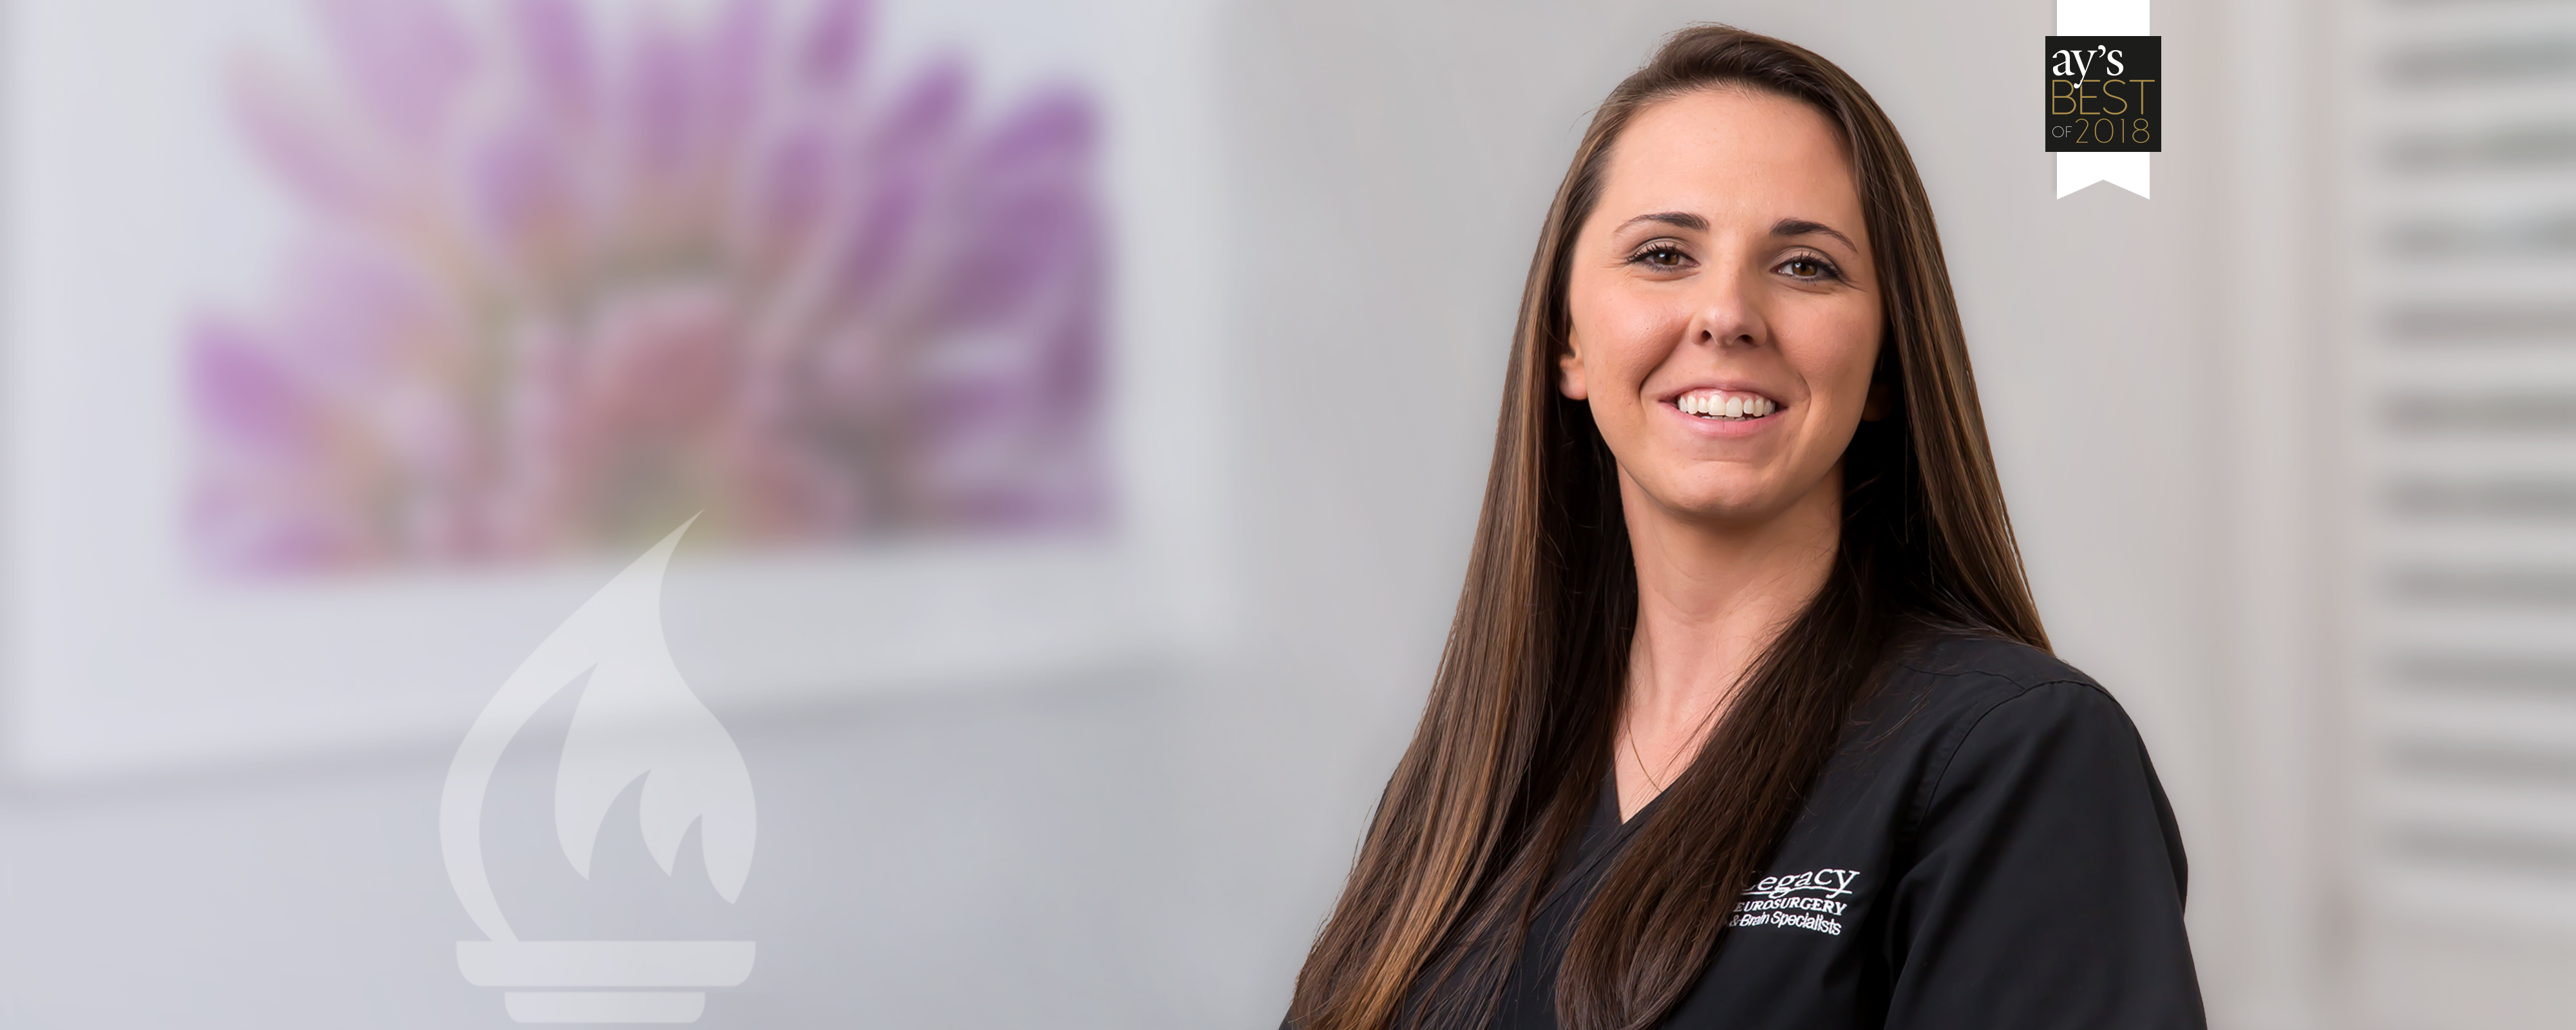 <span>Great work, Jessica!</span></br>Named a BEST</br>physical therapist</br>by AY readers.